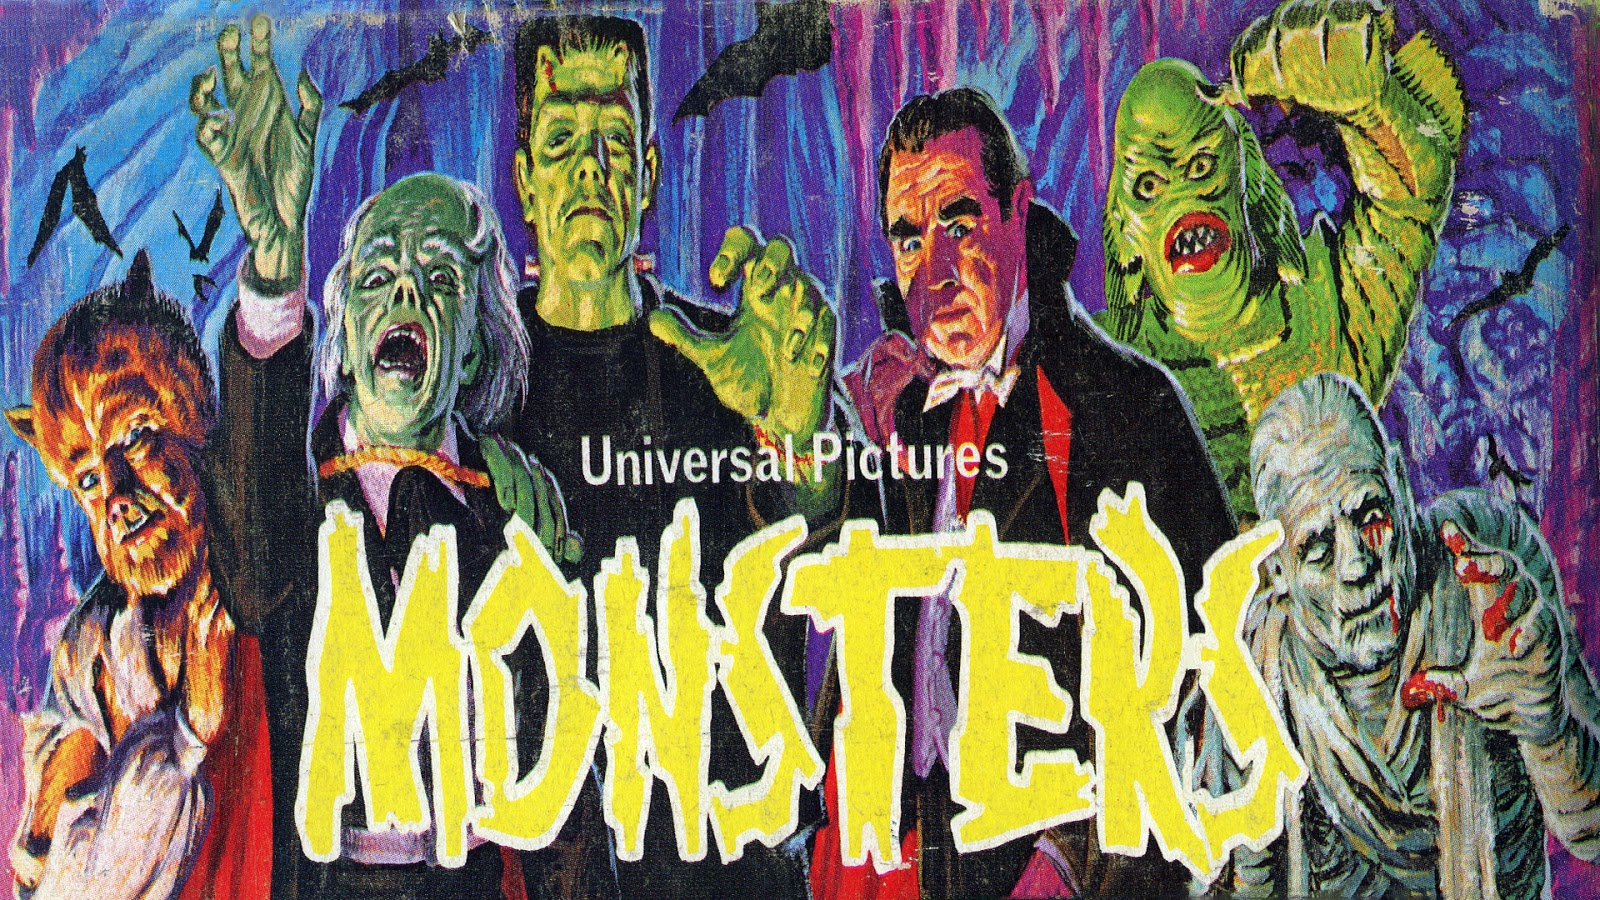 Classic Monster Wallpaper Backgrounds